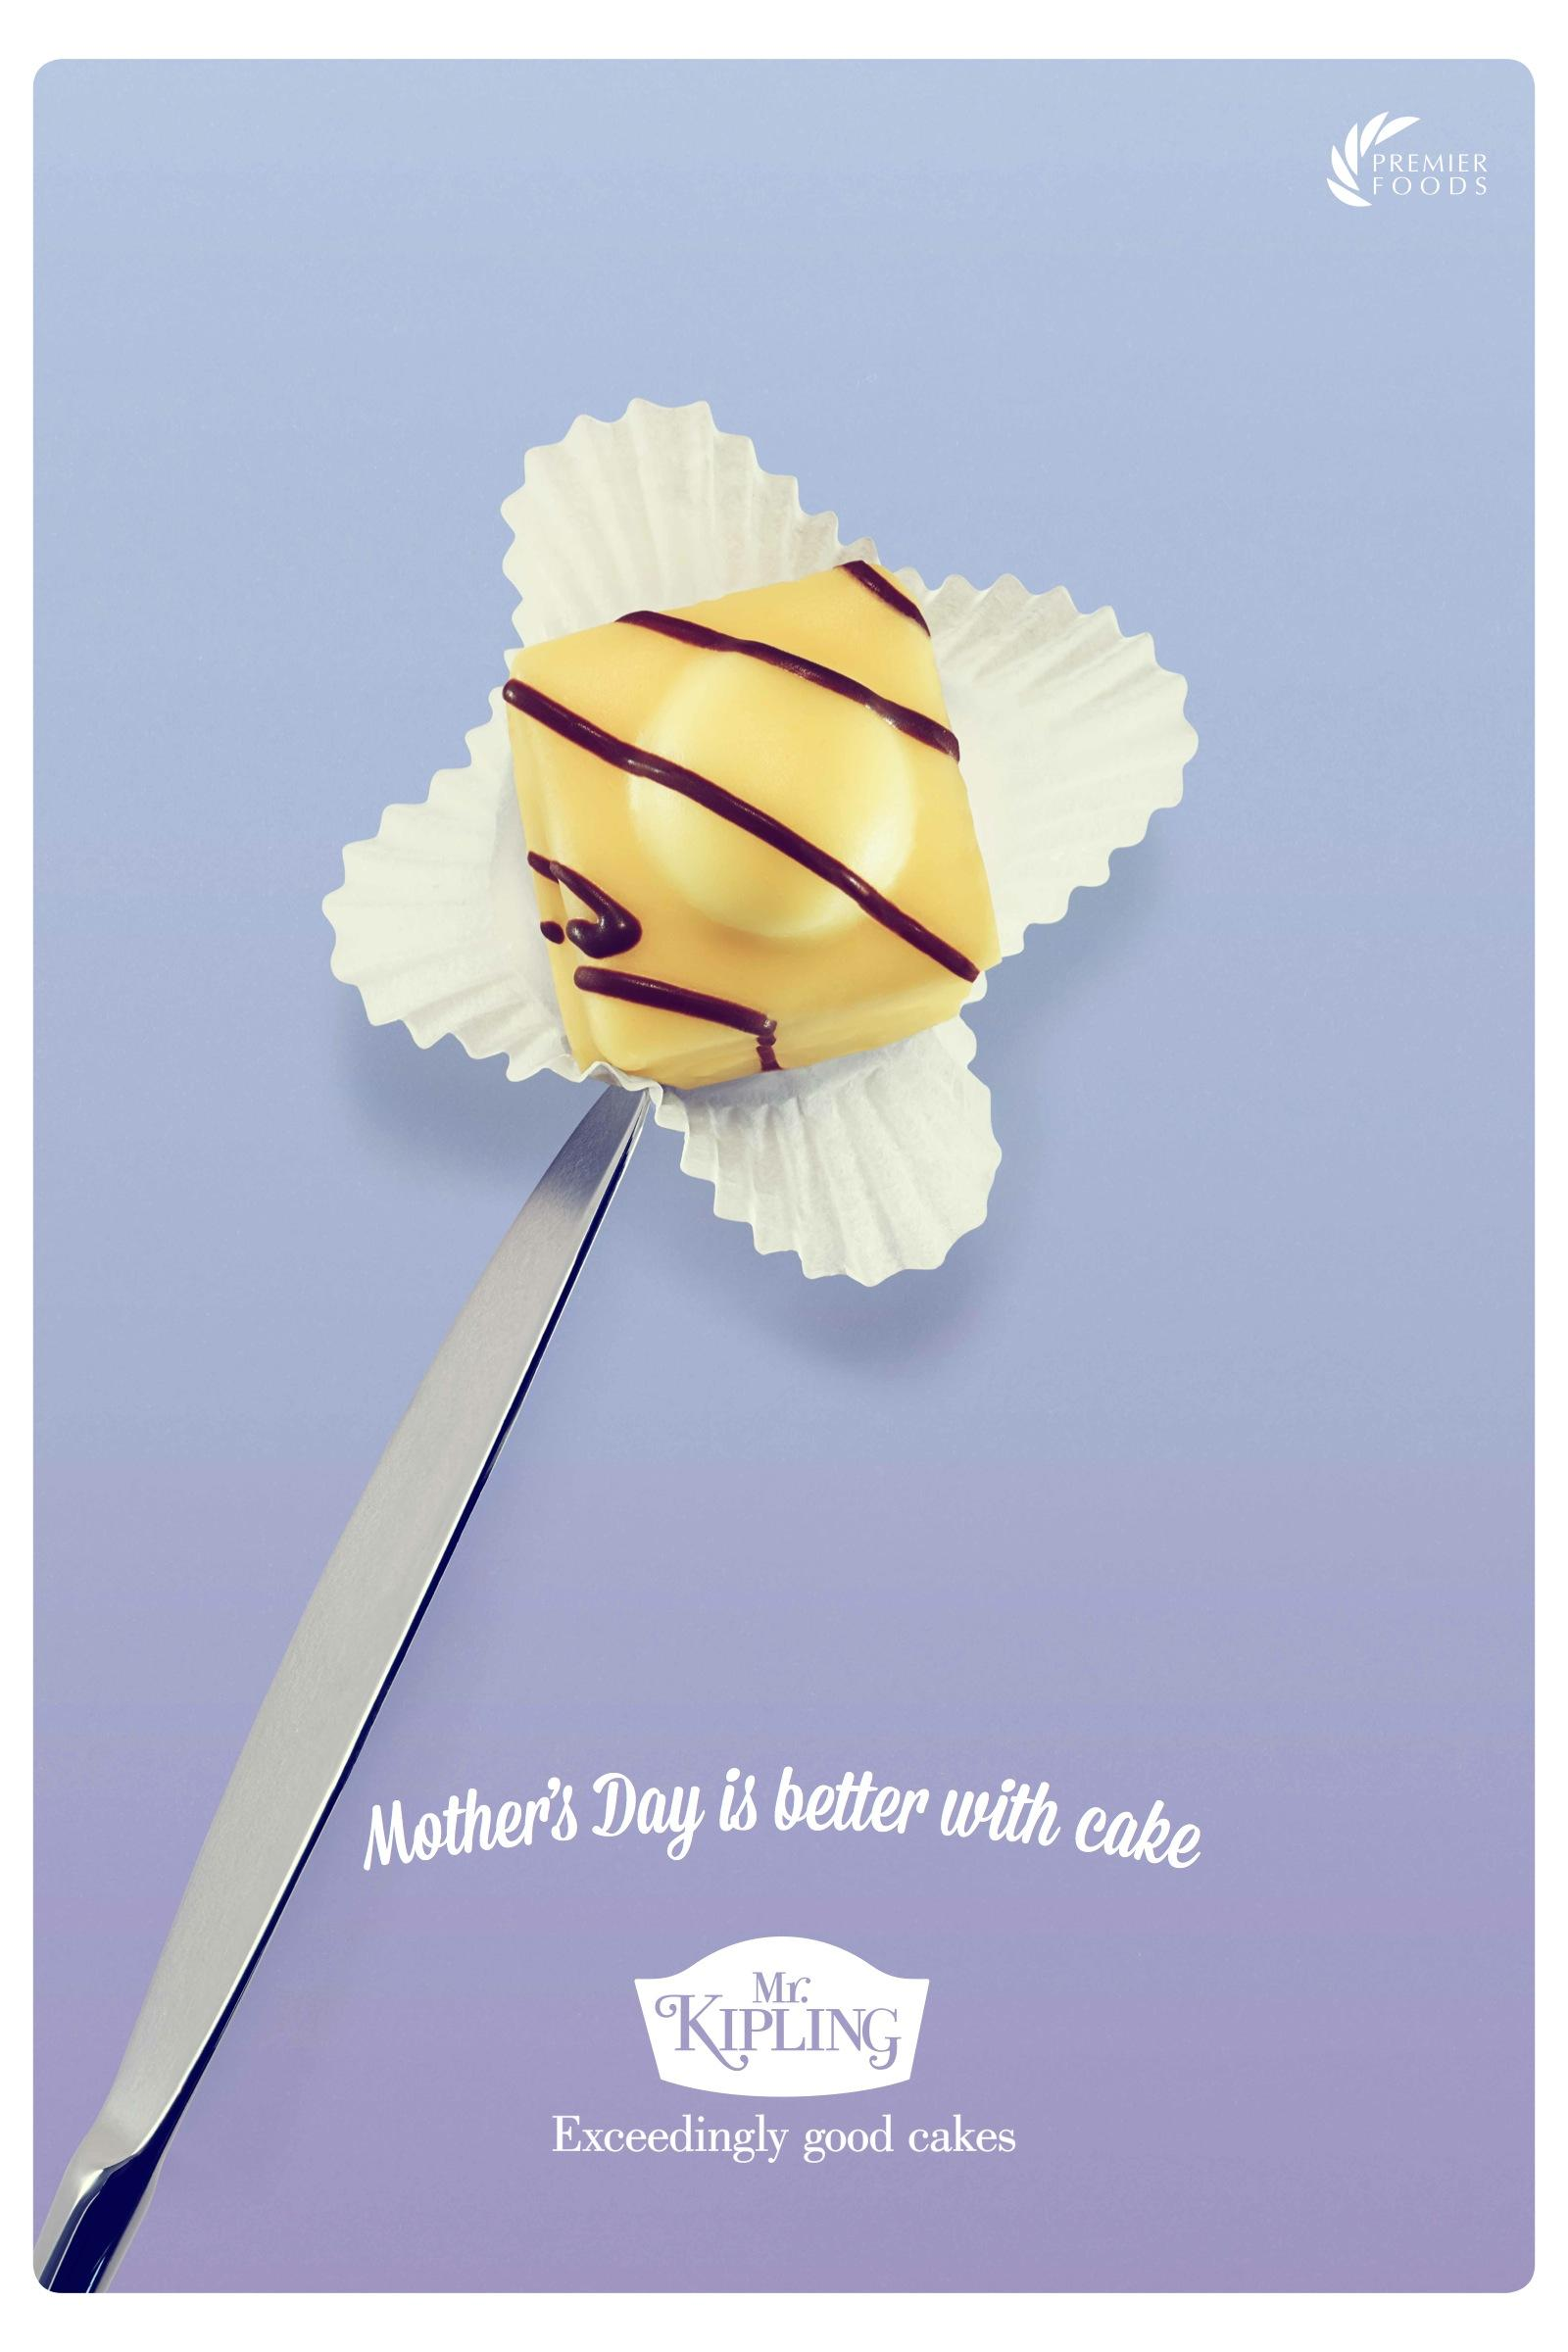 Mr Kipling Outdoor Ad -  Mother's Day